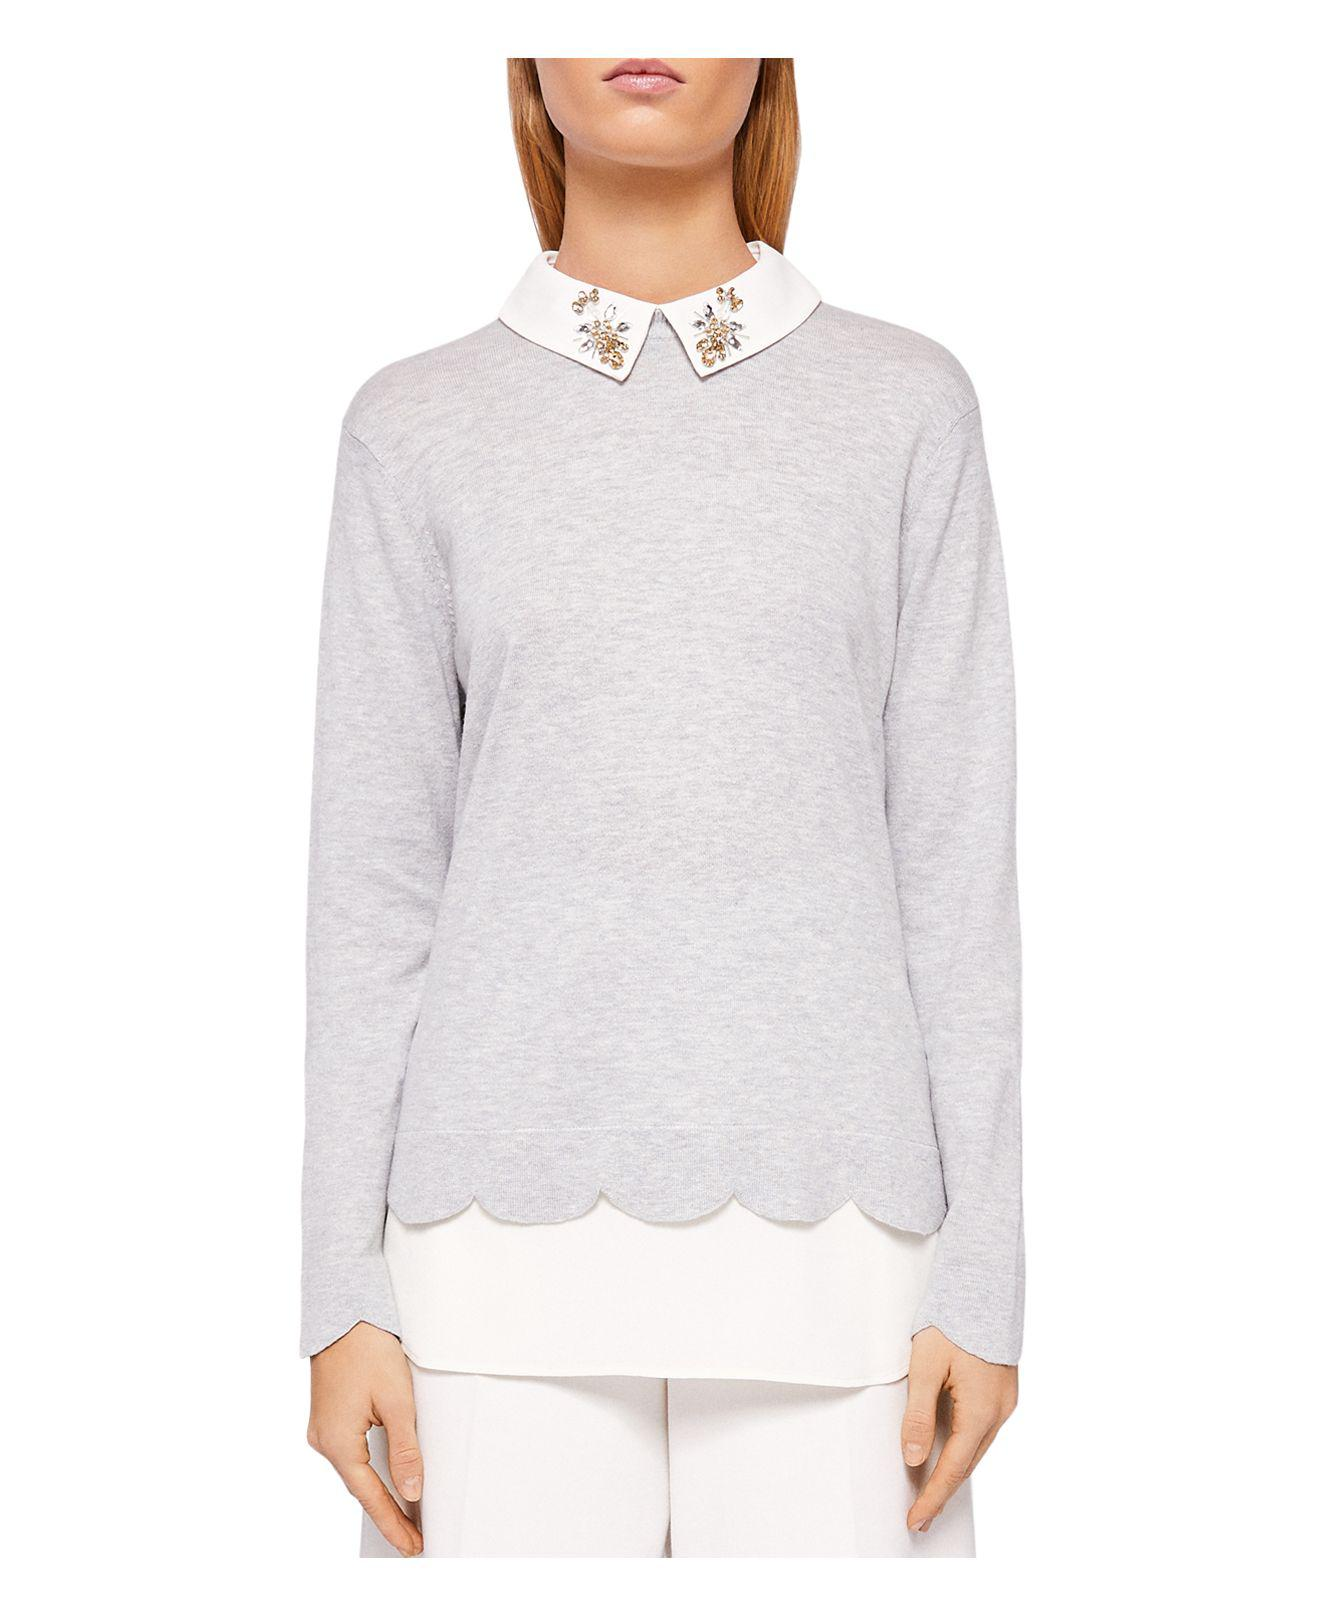 5ac0355927df Lyst - Ted Baker Suzaine Layered-look Sweater in Gray